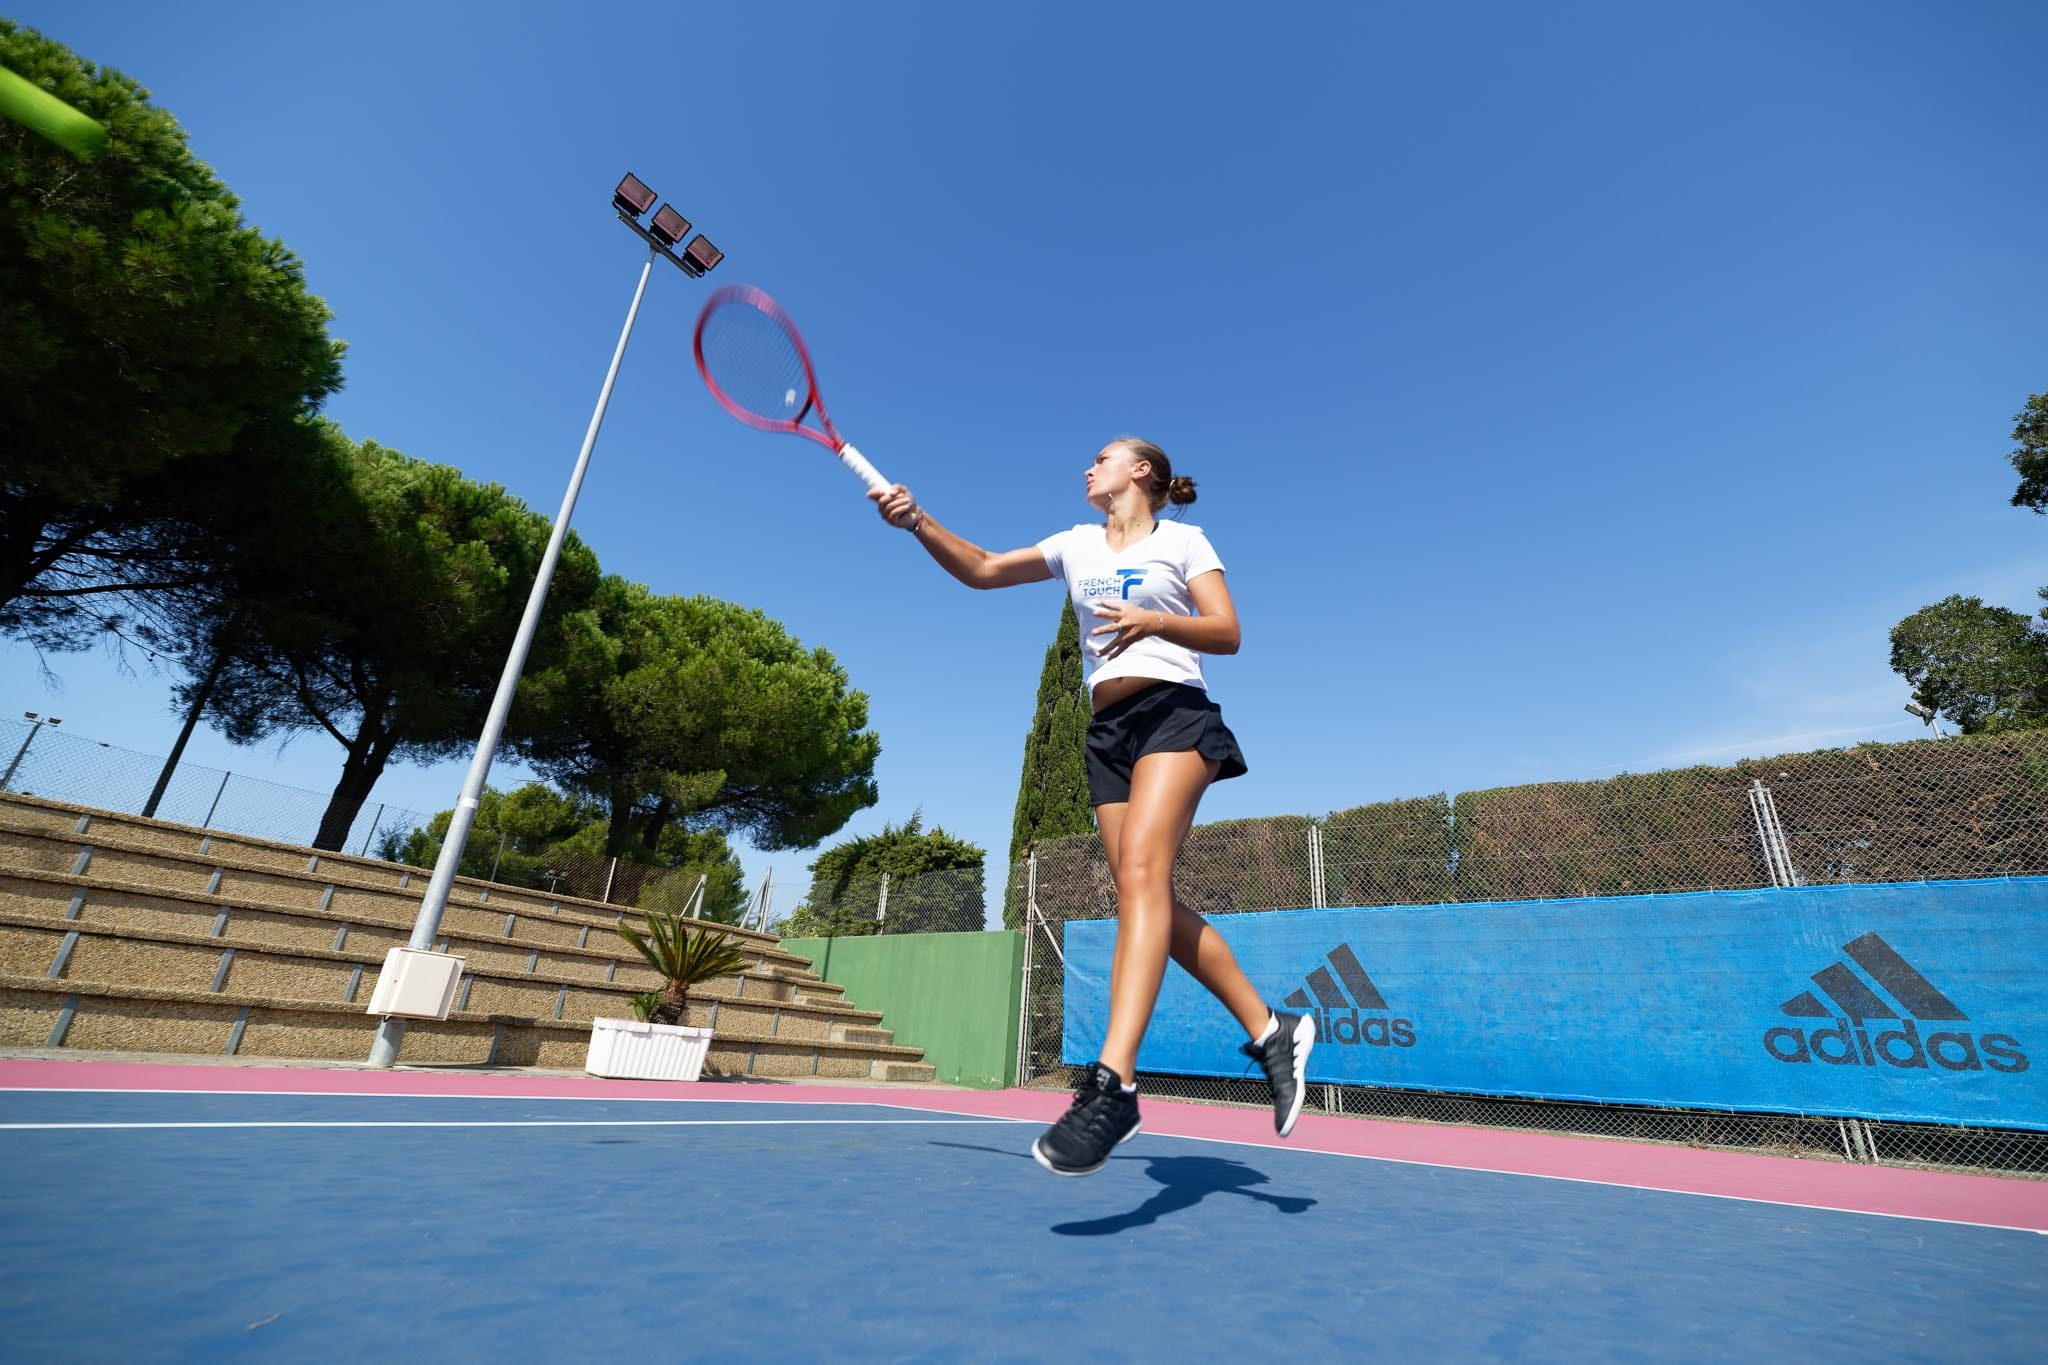 Professional tennis player training  on the center tennis court of the French Touch Academy in Cap d'Agde